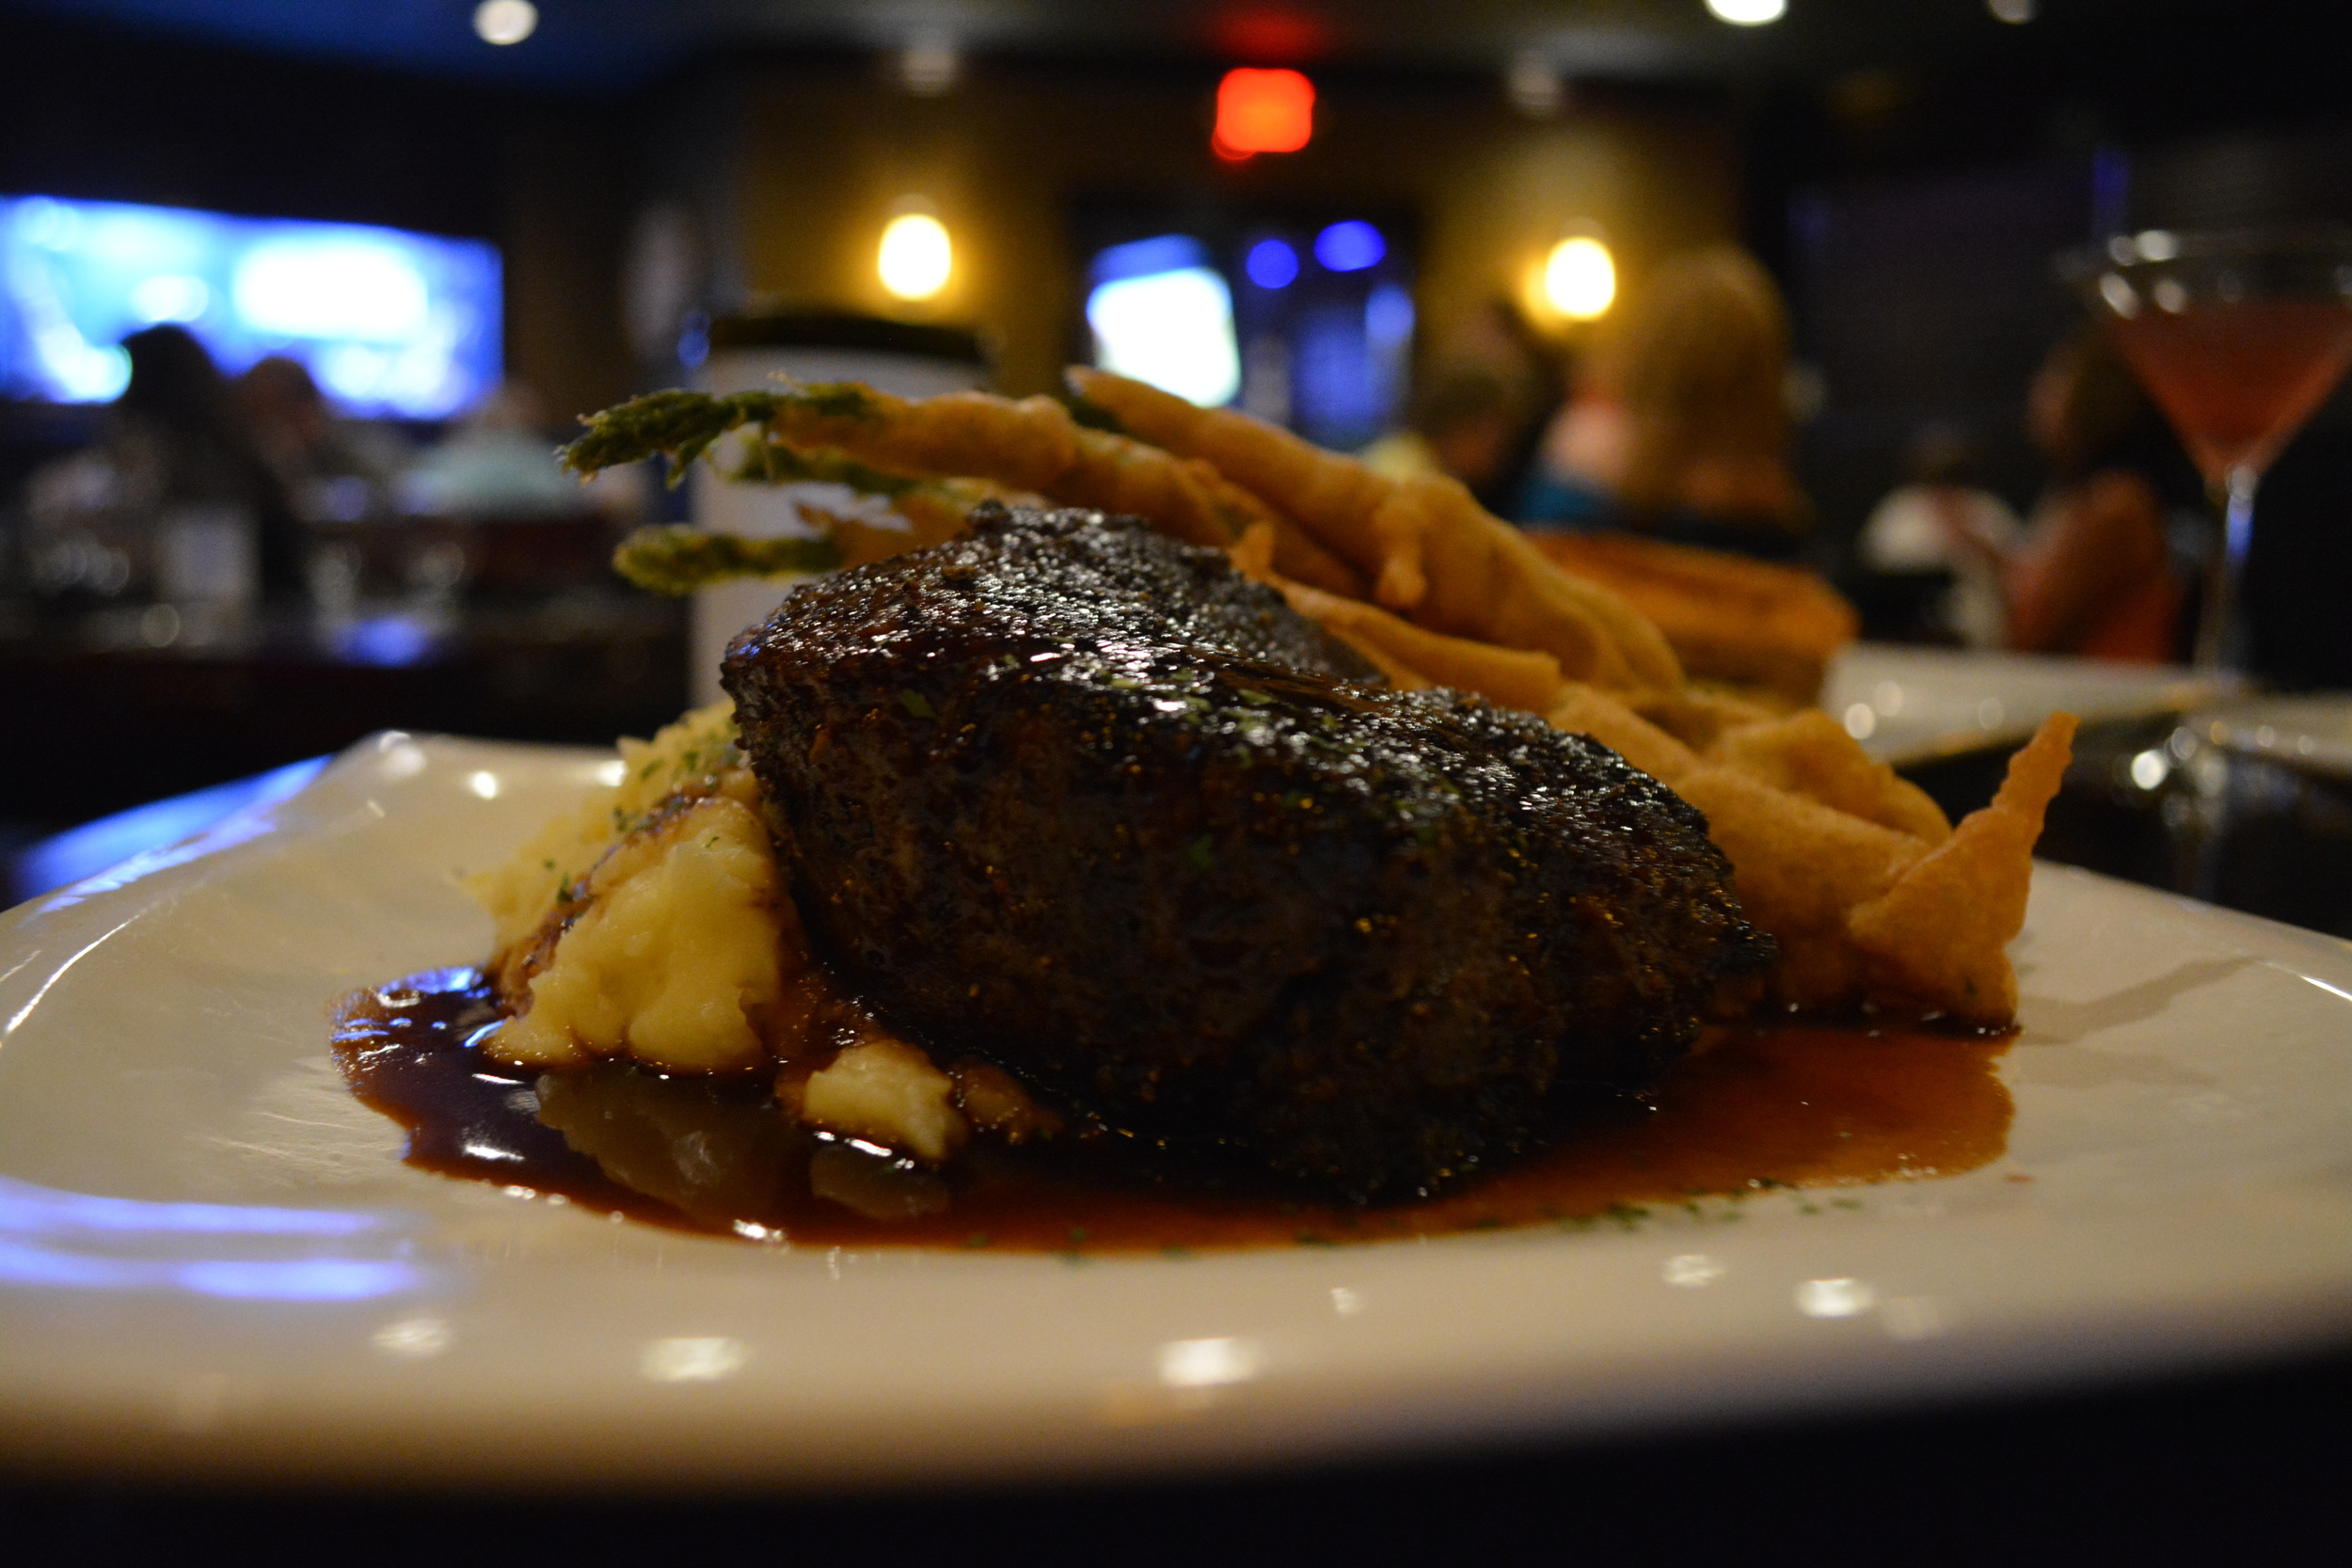 The Pan Roasted 10 oz. Filet Mignon ($36), mentioned above.